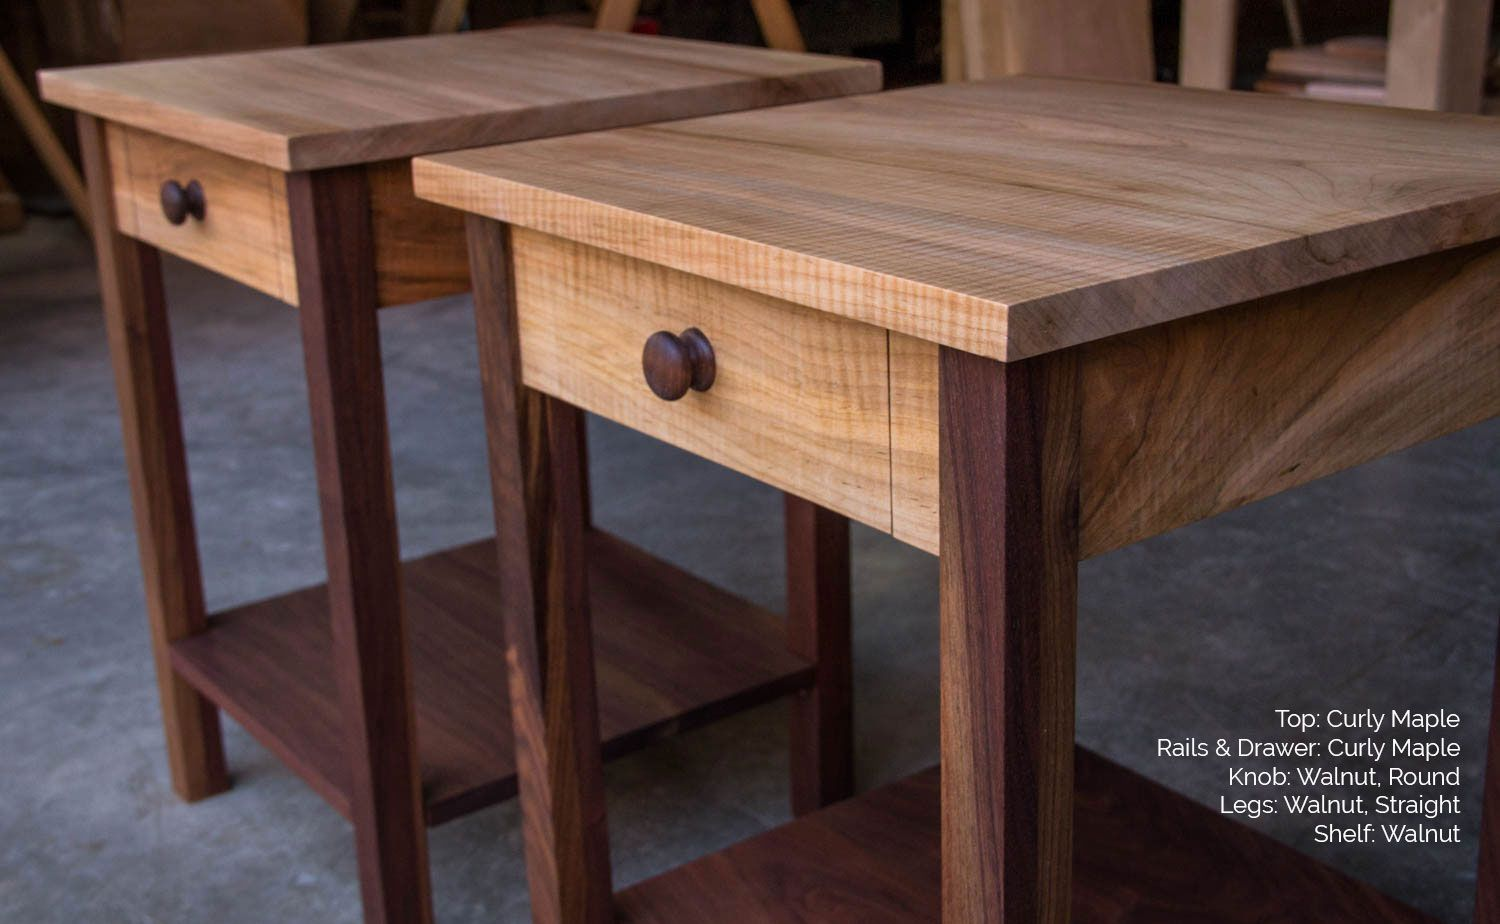 Oak Nightstands At Bargain Prices